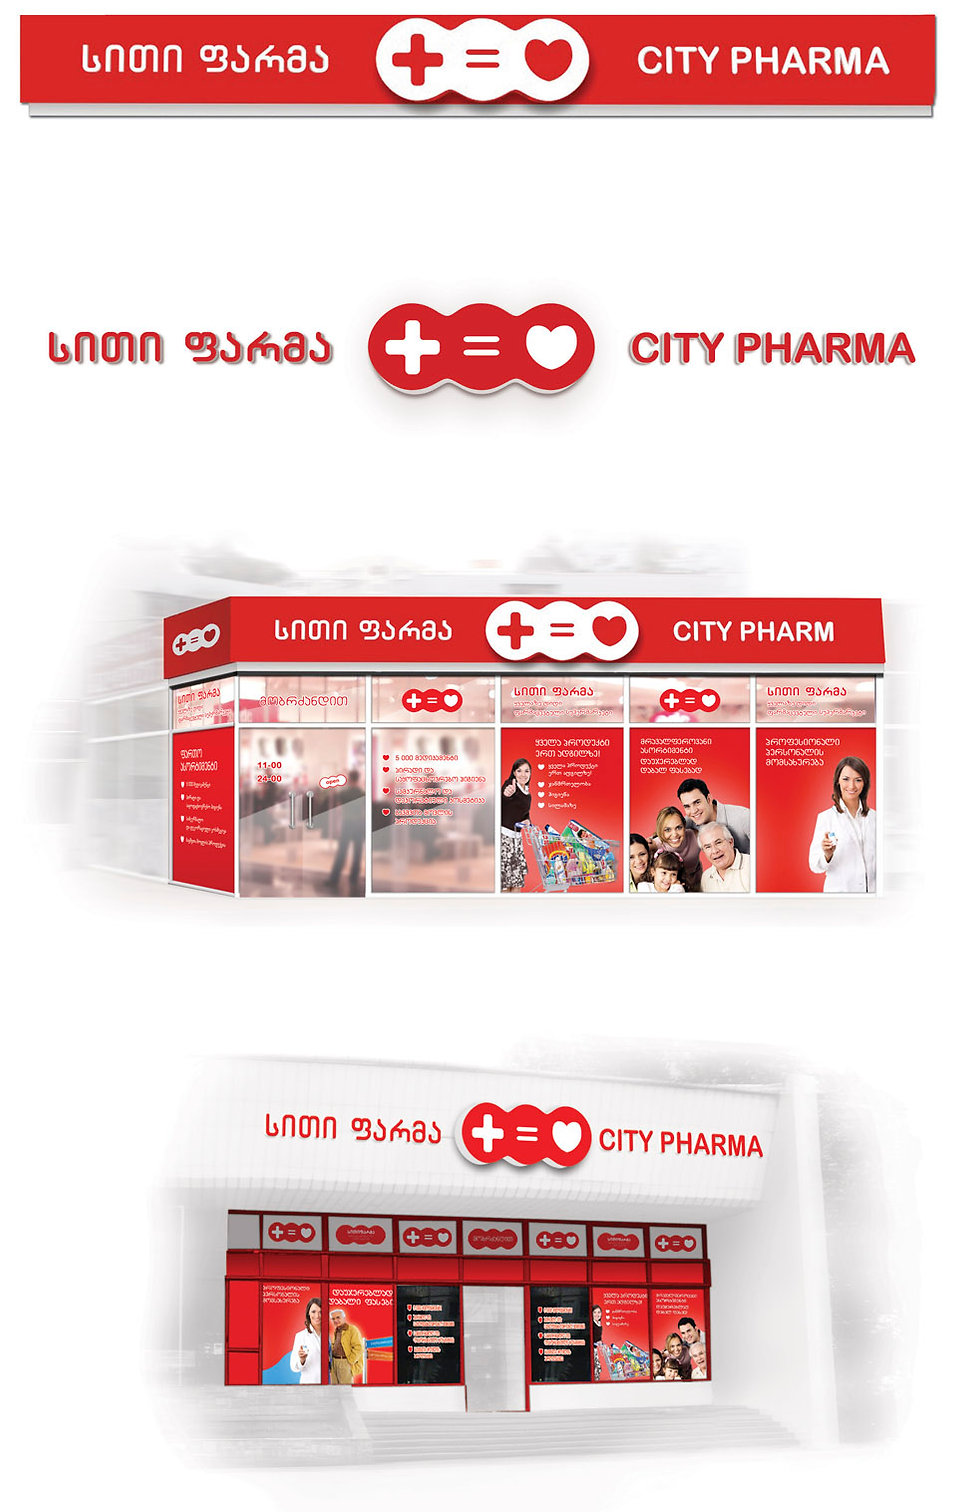 city pharma design